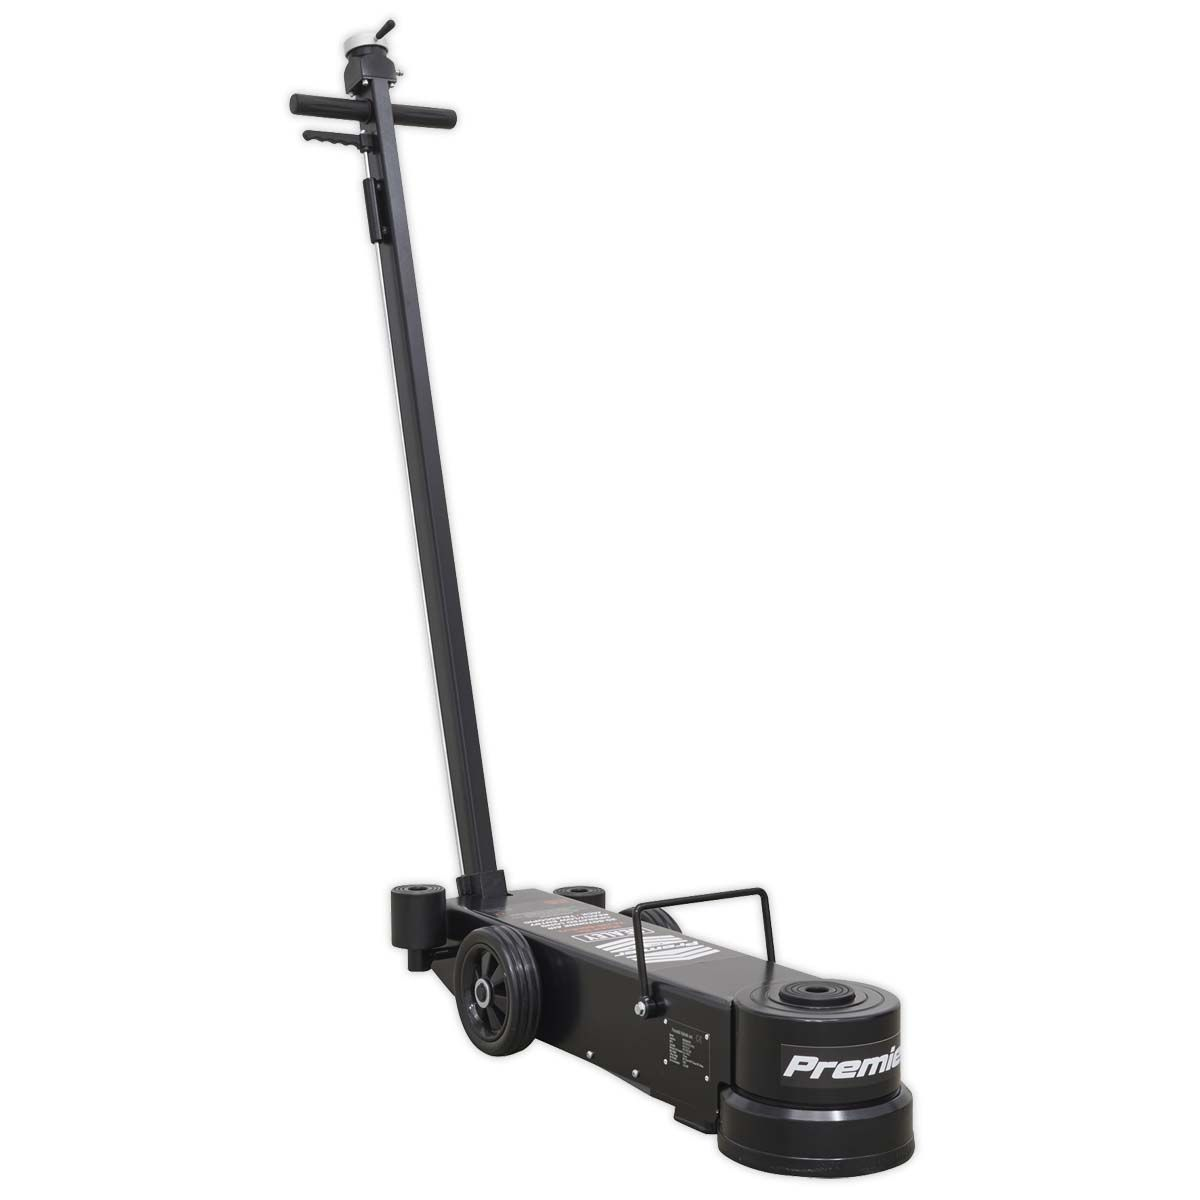 Sealey Air Operated Jack 20-60tonne Telescopic - Long Reach/Low Entry